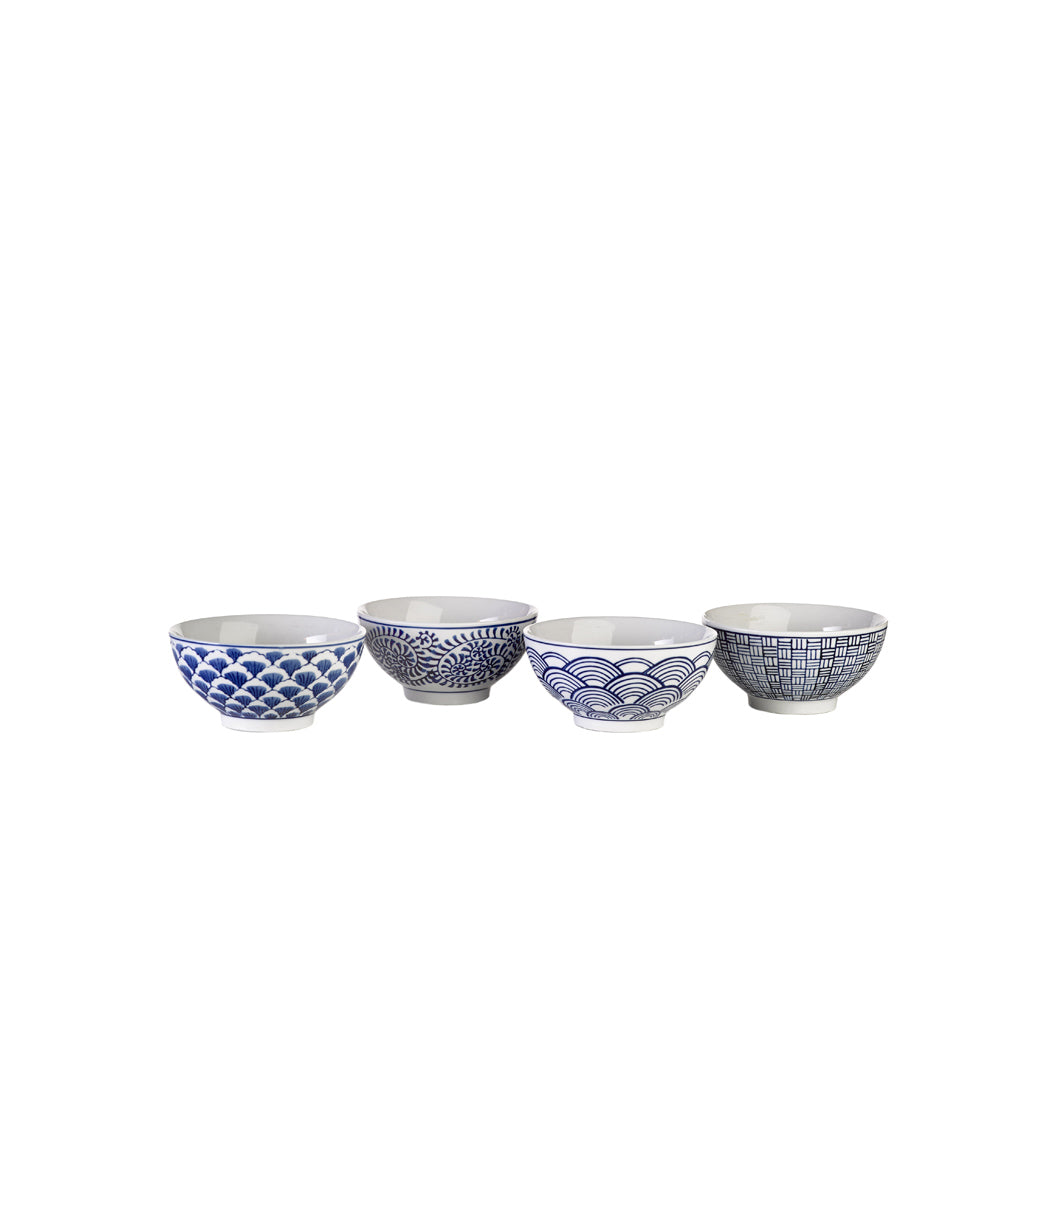 Bowls sushi set of 4